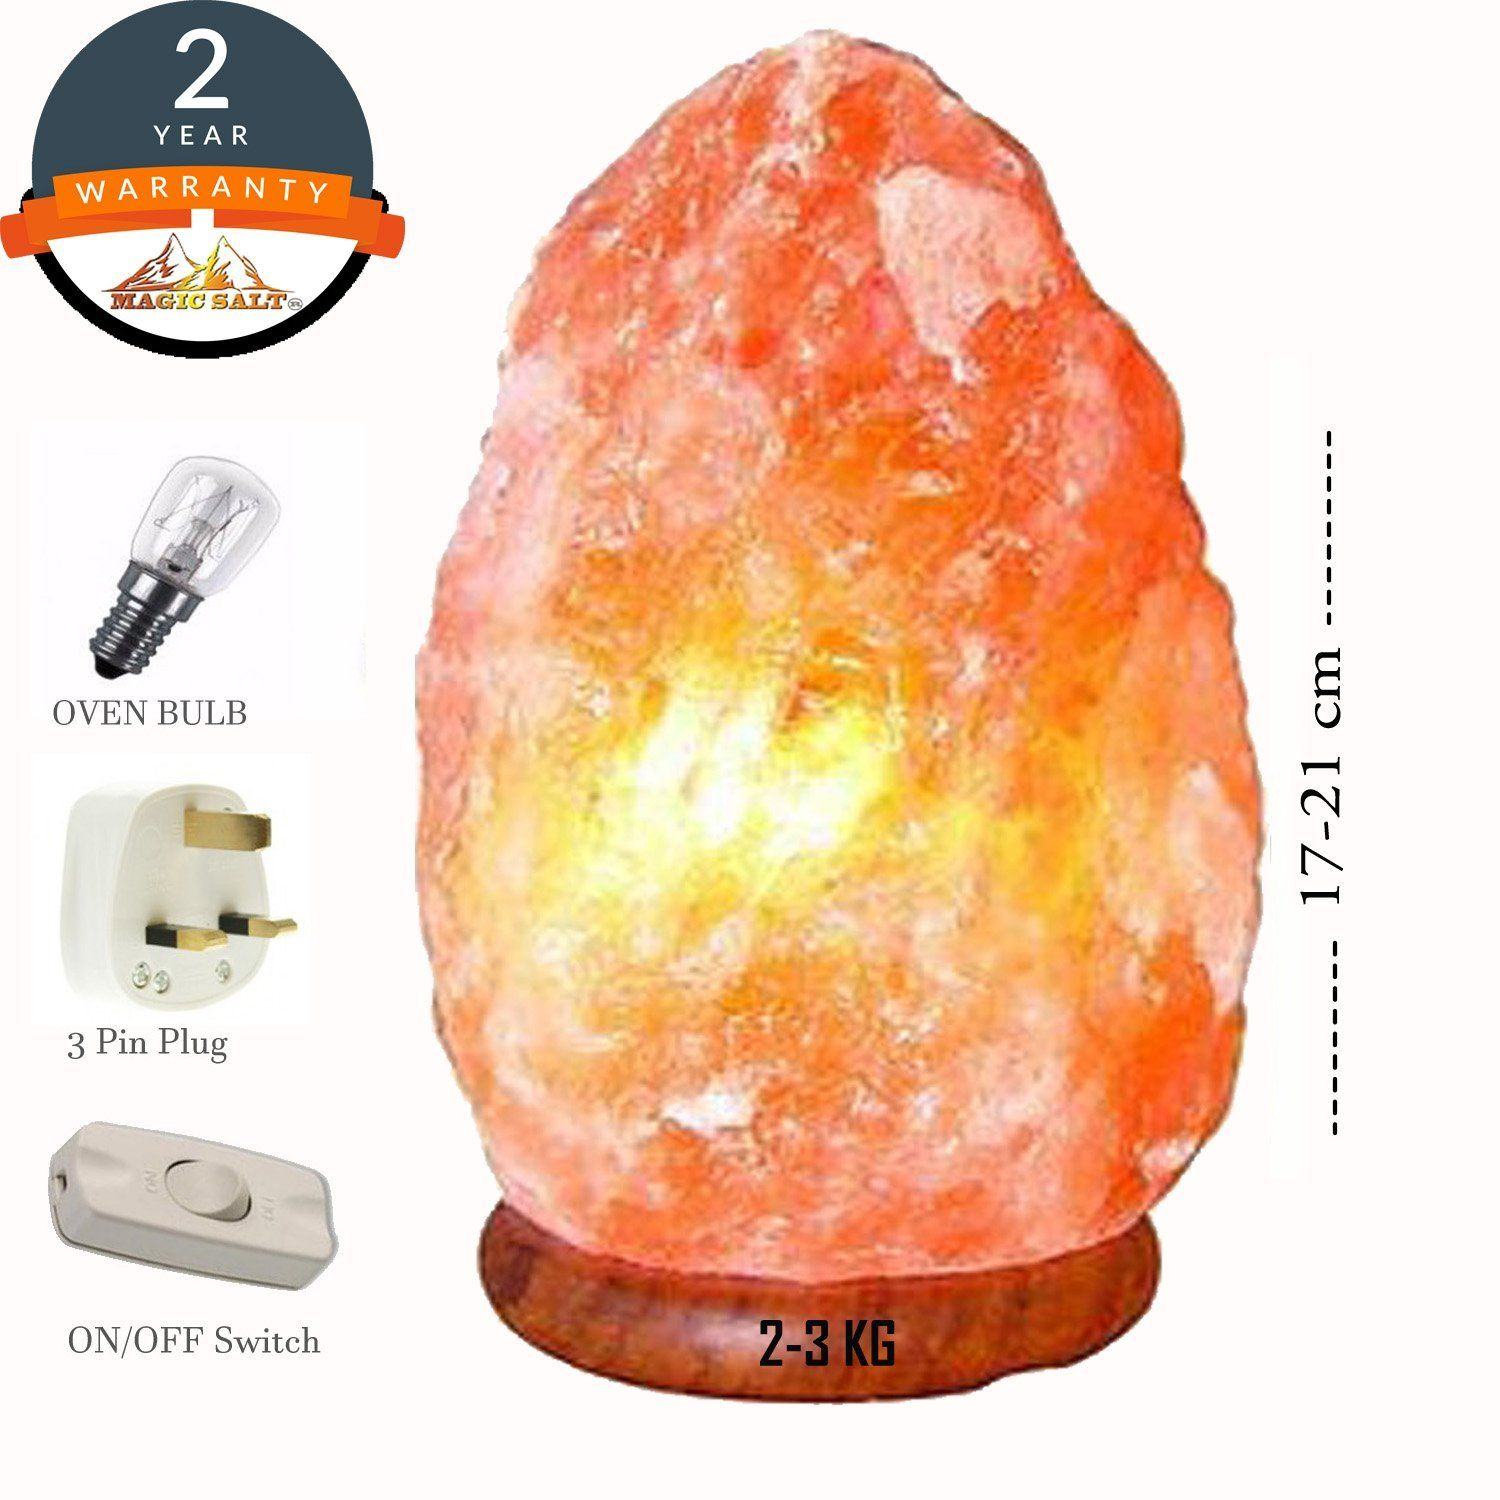 Himalayan Salt Lamps For Sale New Price £1499 Sale £1197 Free Uk Deliveryhimalayan Salt Lamp 23